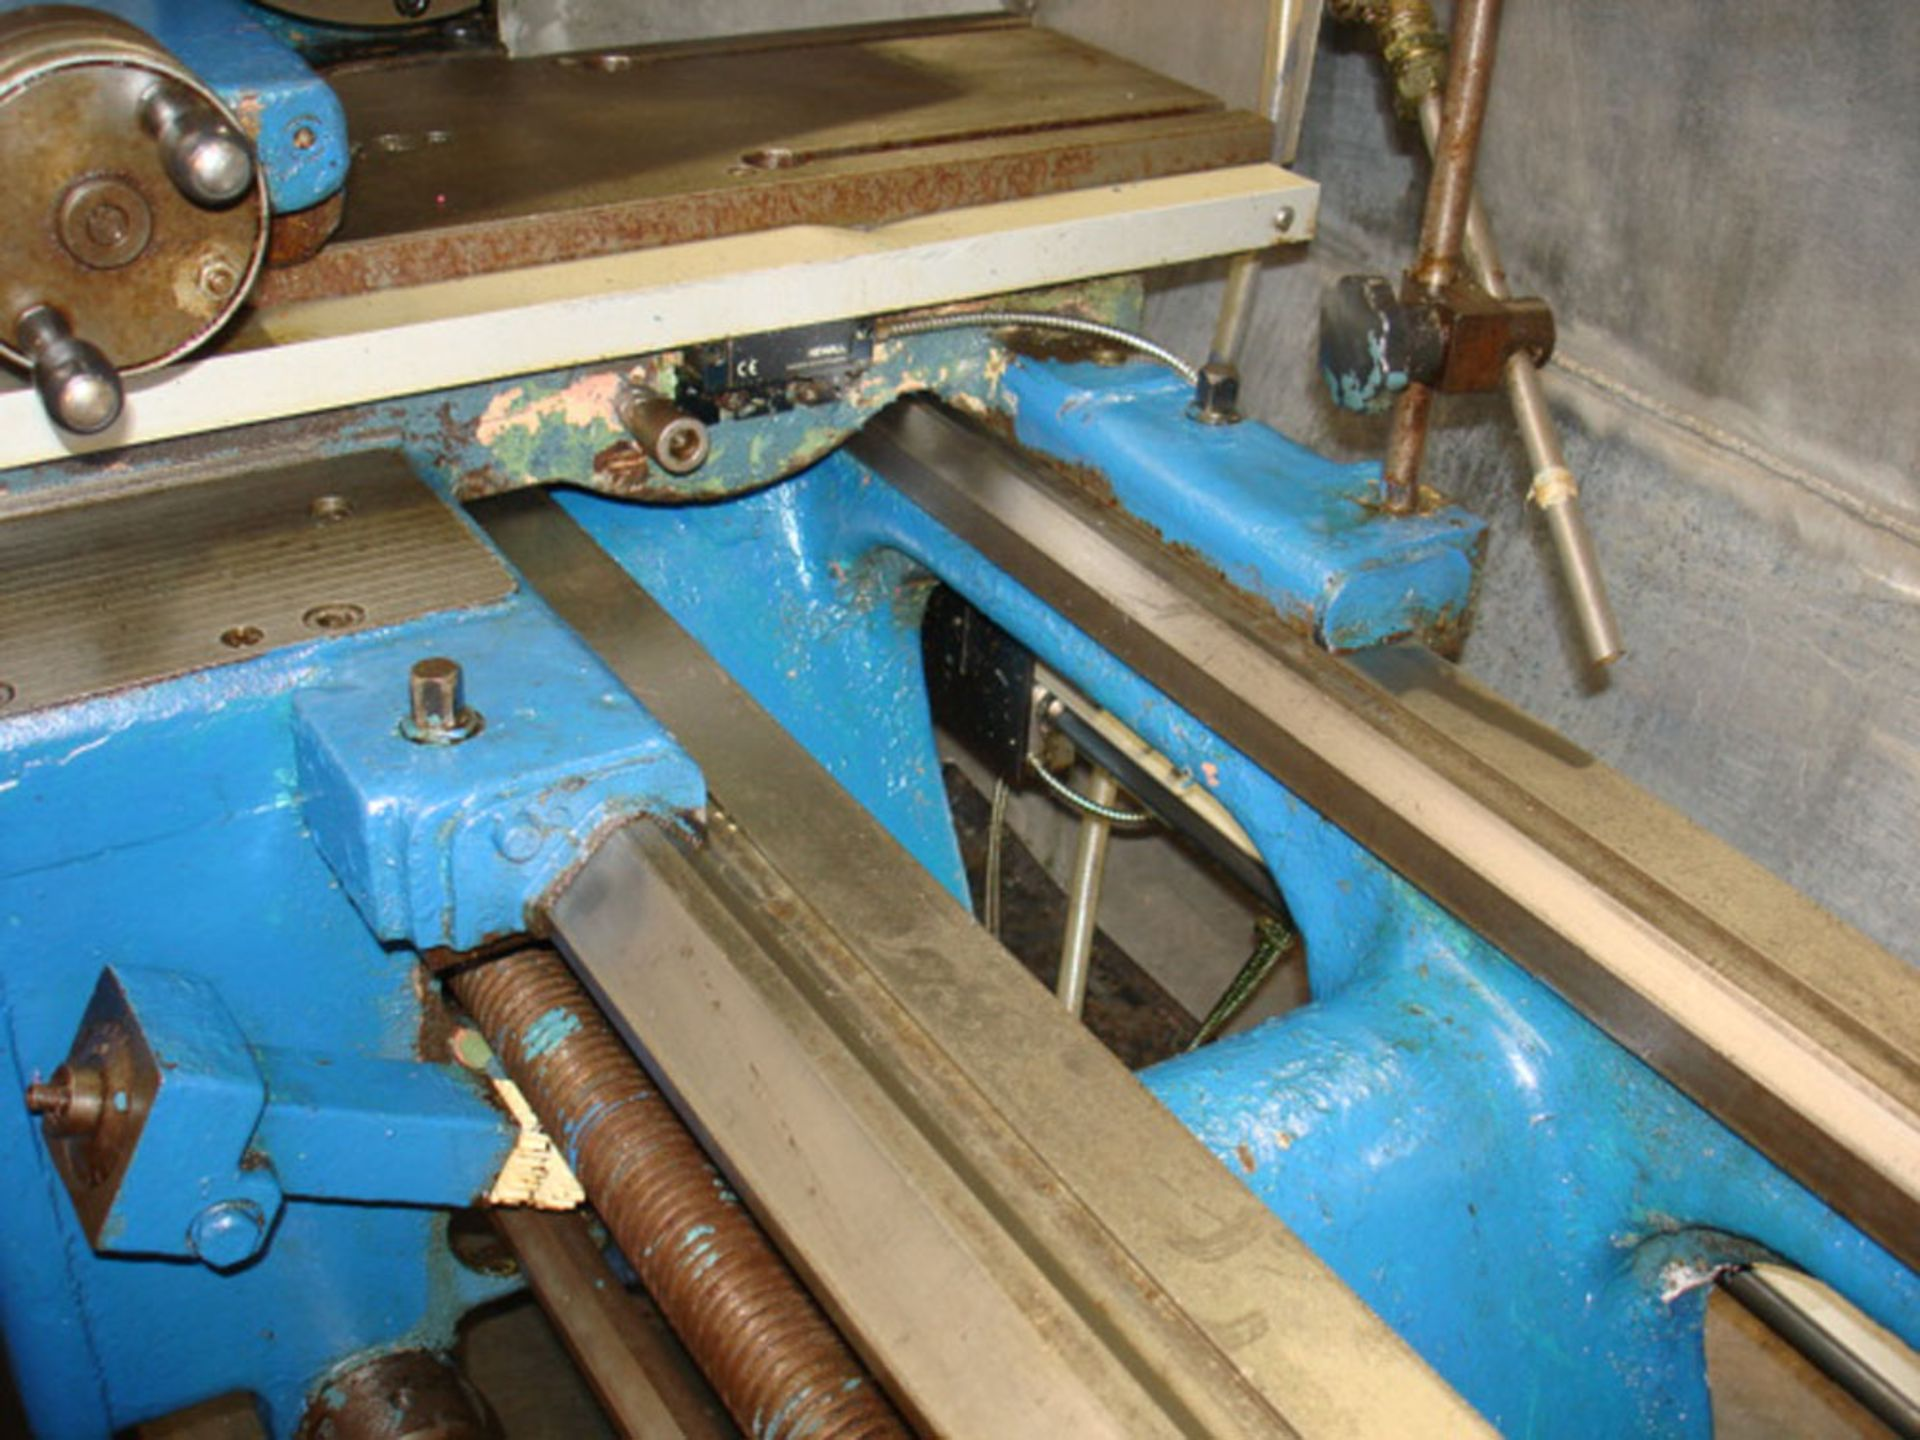 Tezsan SN50 Centre Lathe. Swing Over Bed 500mm x 1000mm Between Centres. - Image 5 of 7